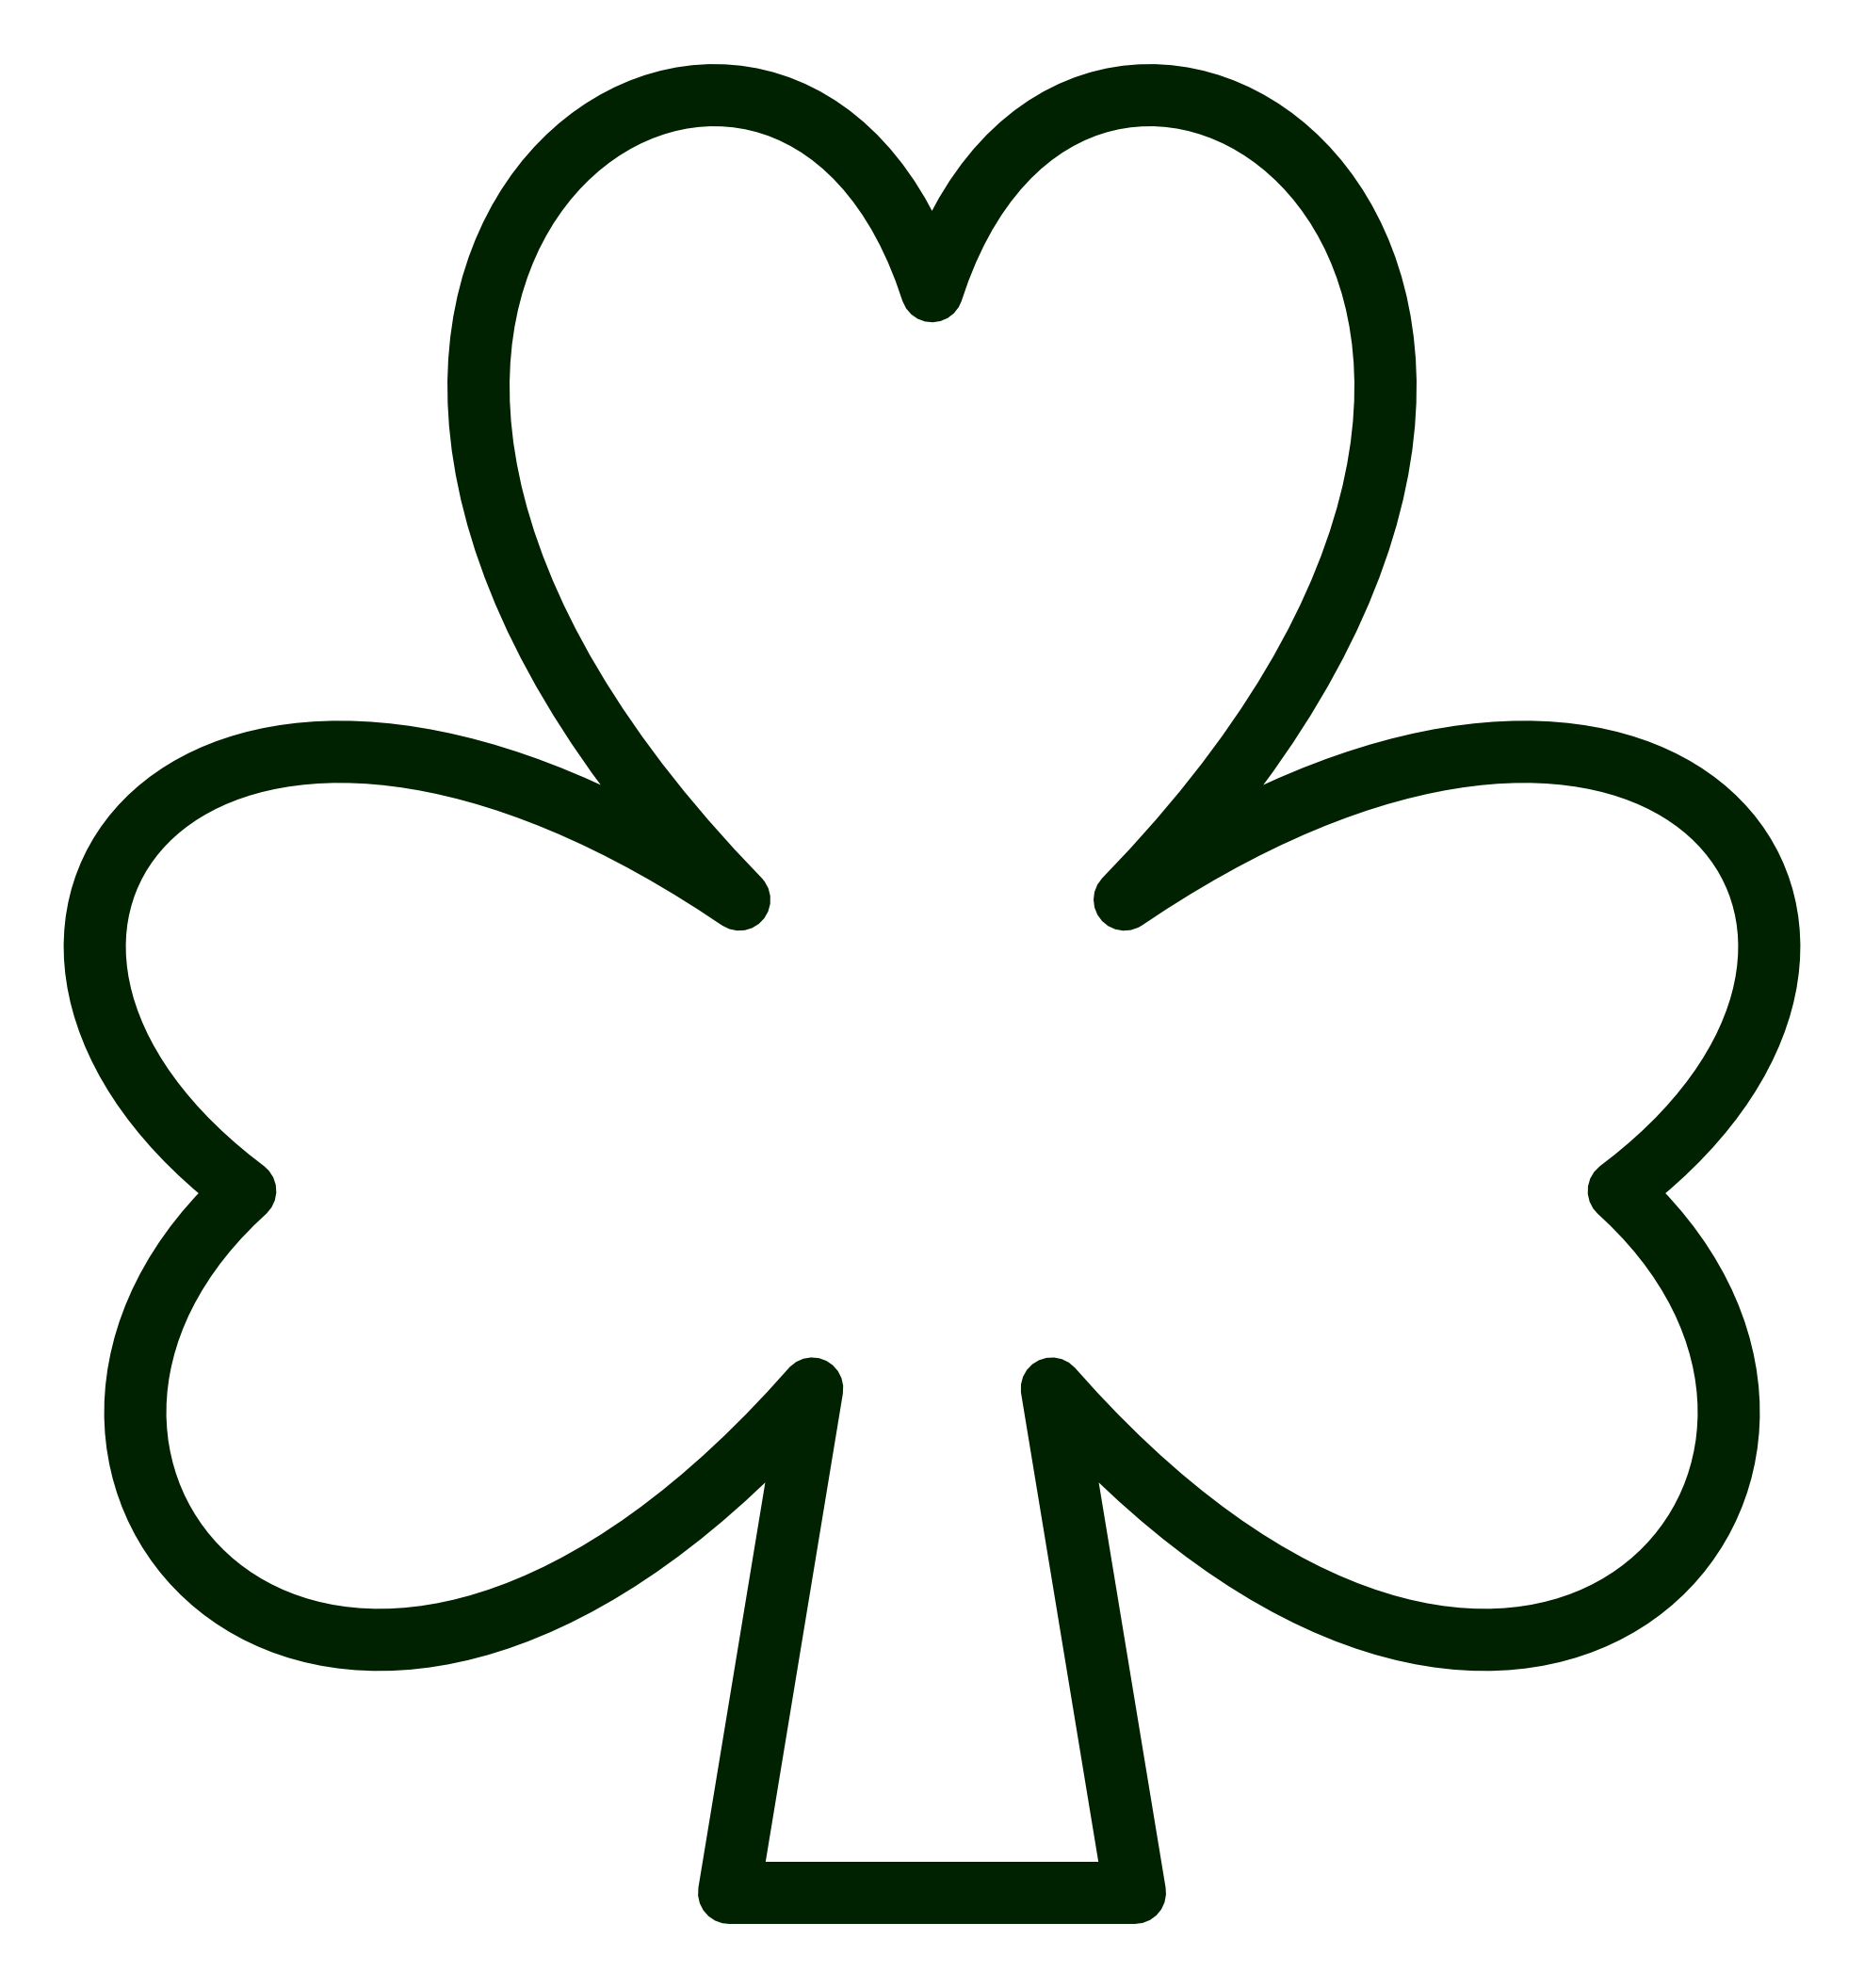 Patrick star clipart black and white royalty free library St Patrick S Day Shamrock Clip Art | Pre -k | Pinterest | Clip art ... royalty free library